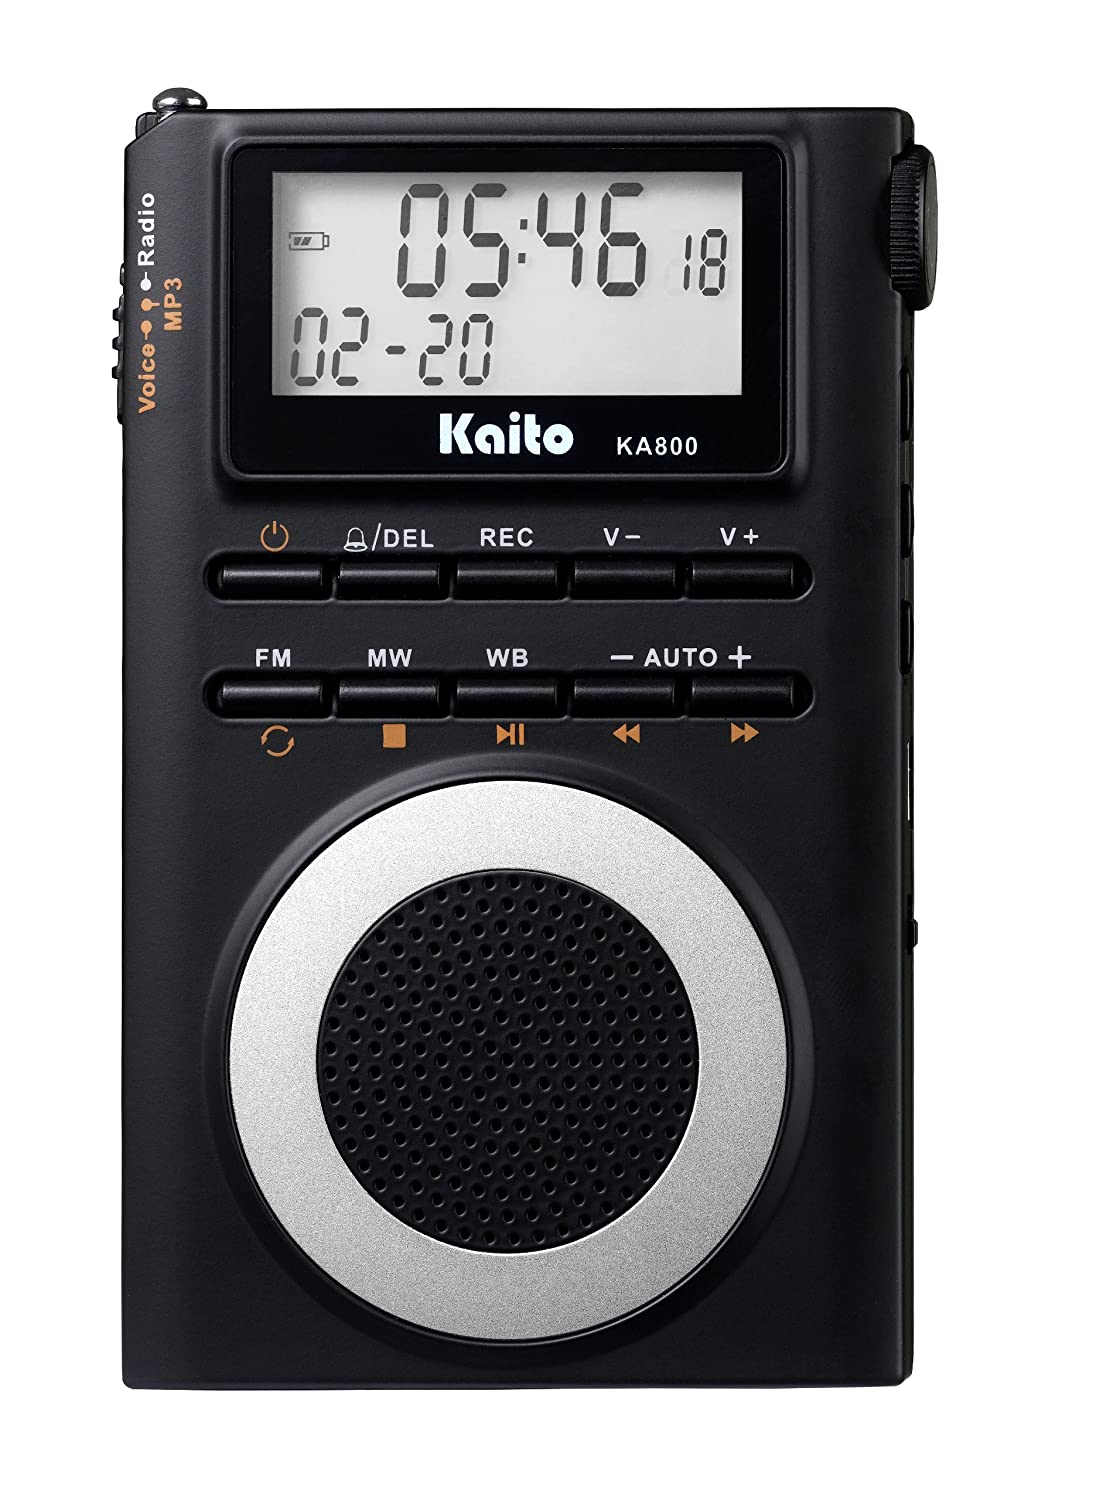 Amazon.com: Kaito KA800 Pocket-size AM/FM NOAA Weather DSP Radio with  Built-in 2GB MP3 Player: Electronics